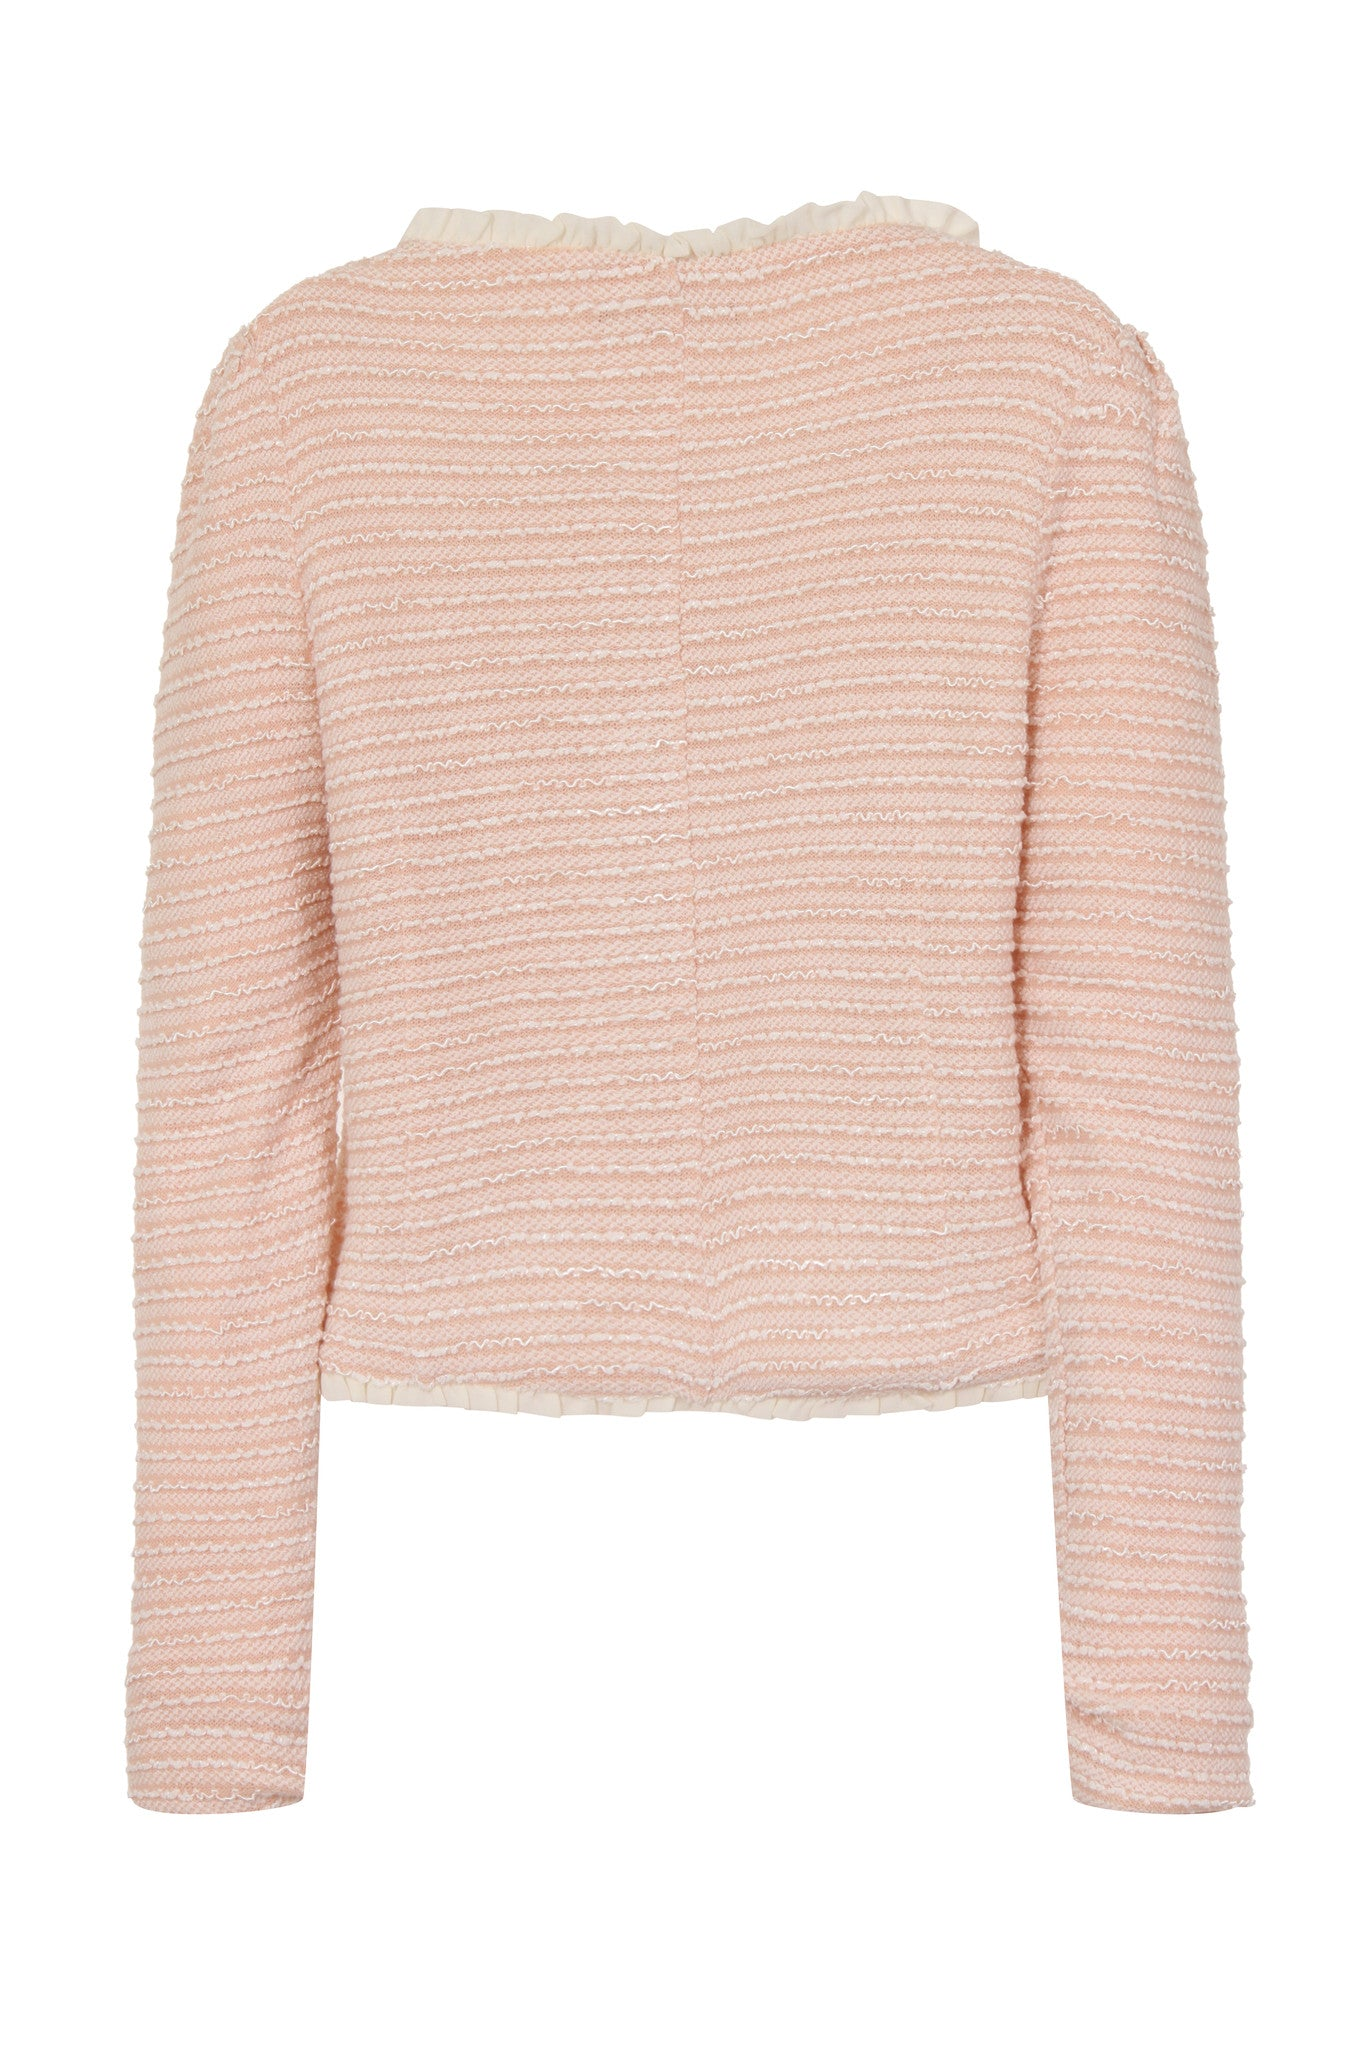 MAX CROPPED JACKET - PINK - Darccy & Soma London